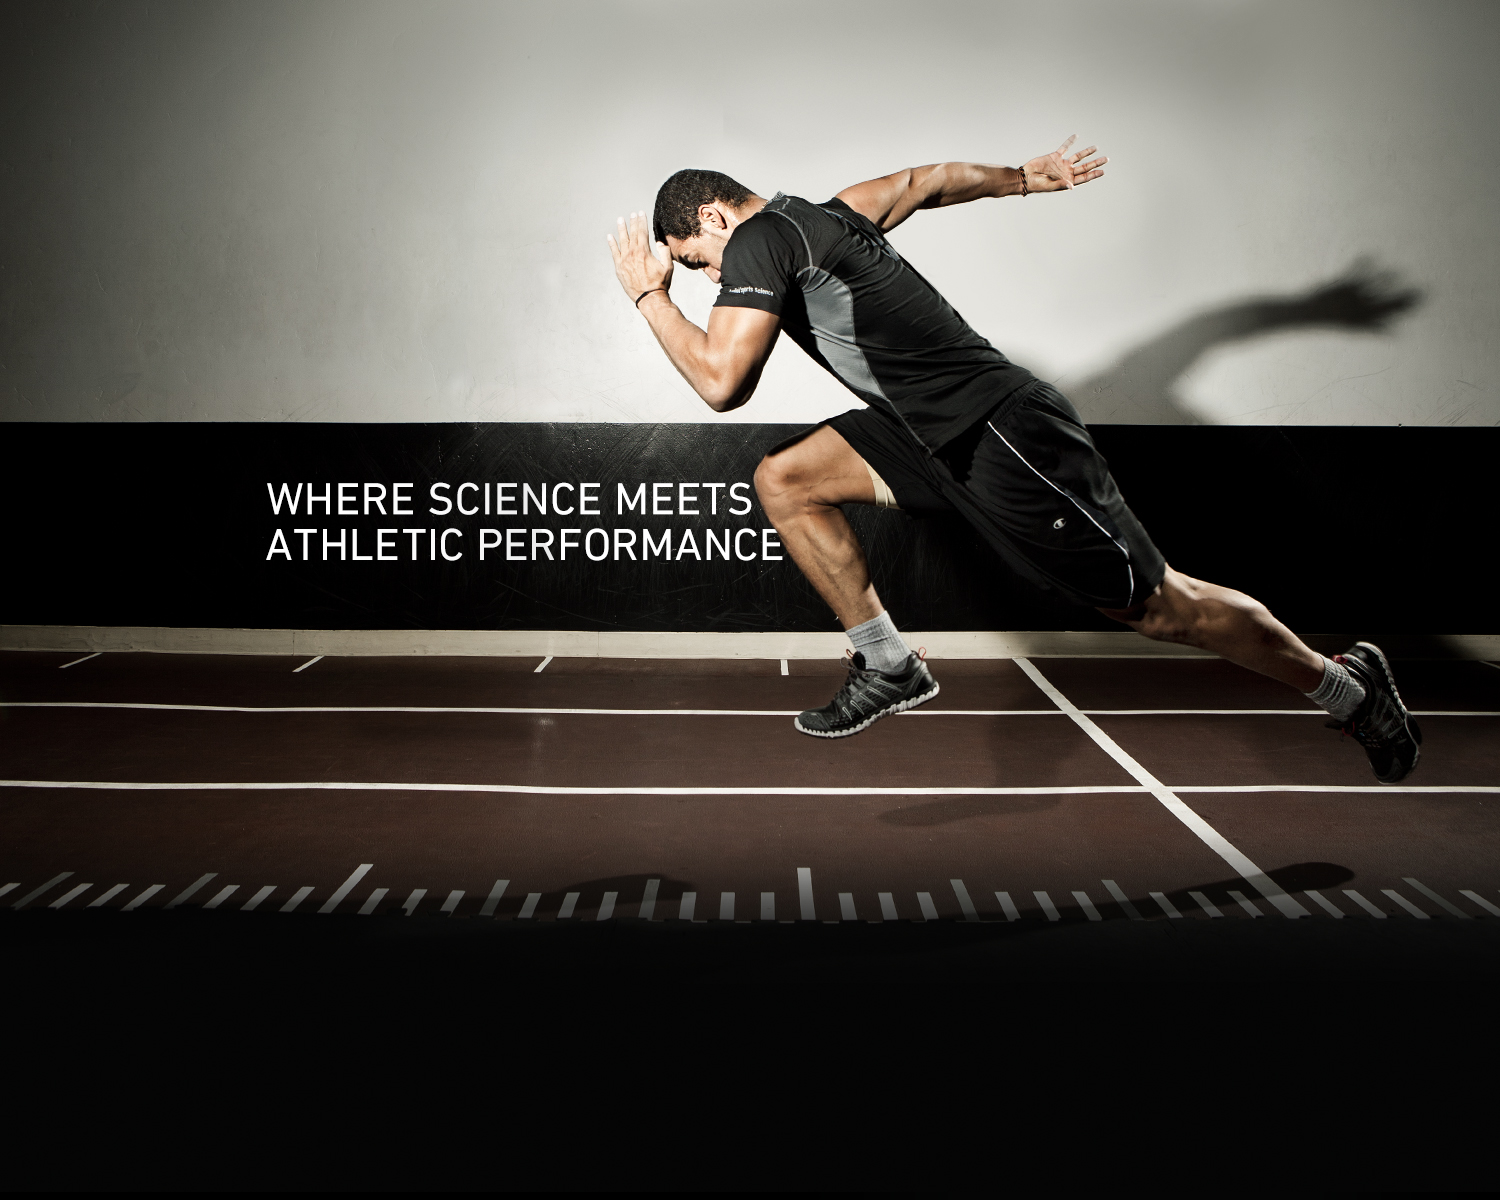 sports performance Mission to deliver the finest collegiate sports performance program in the nation- professionally implemented- to reduce injury risk, optimize athlete development.